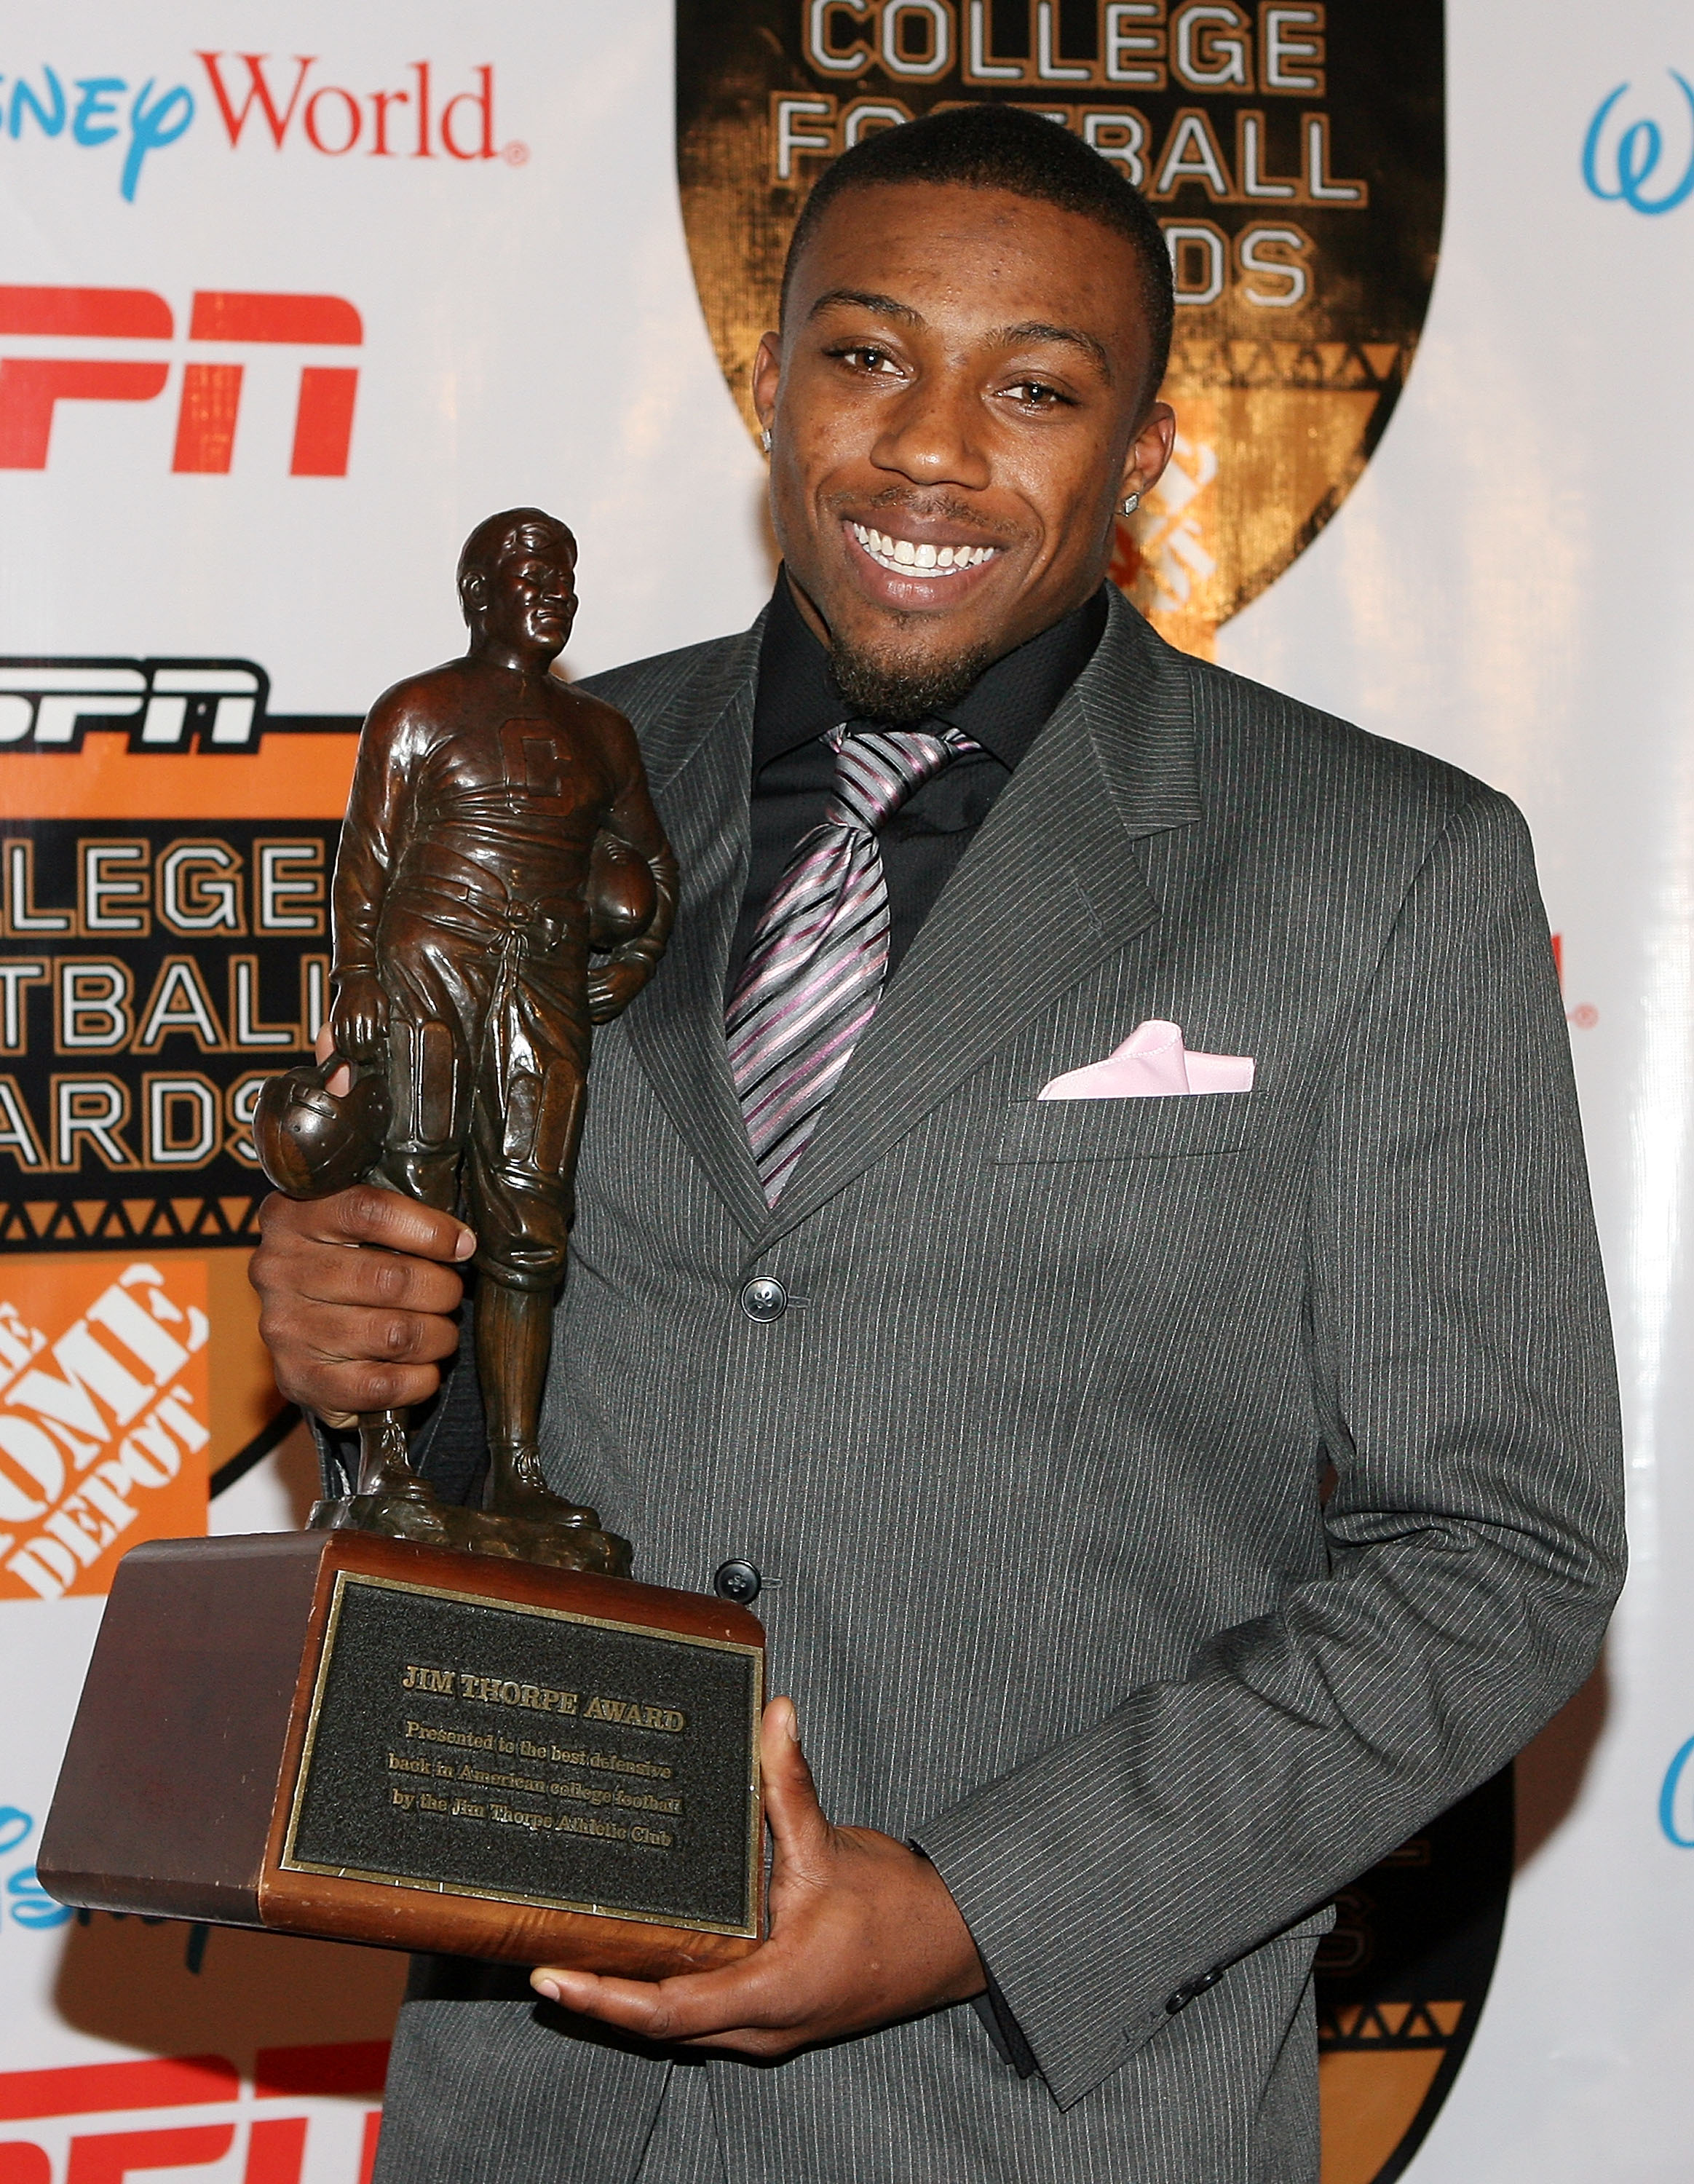 LAKE BUENA VISTA, FL - DECEMBER 10:  Defensive back Eric Berry of the Tennessee Volunteers poses with the Jim Thorpe Award trophy during the Home Depot ESPNU College Football Awards at the Disney Boardwalk on December 10, 2009 in Lake Buena Vista, Florida